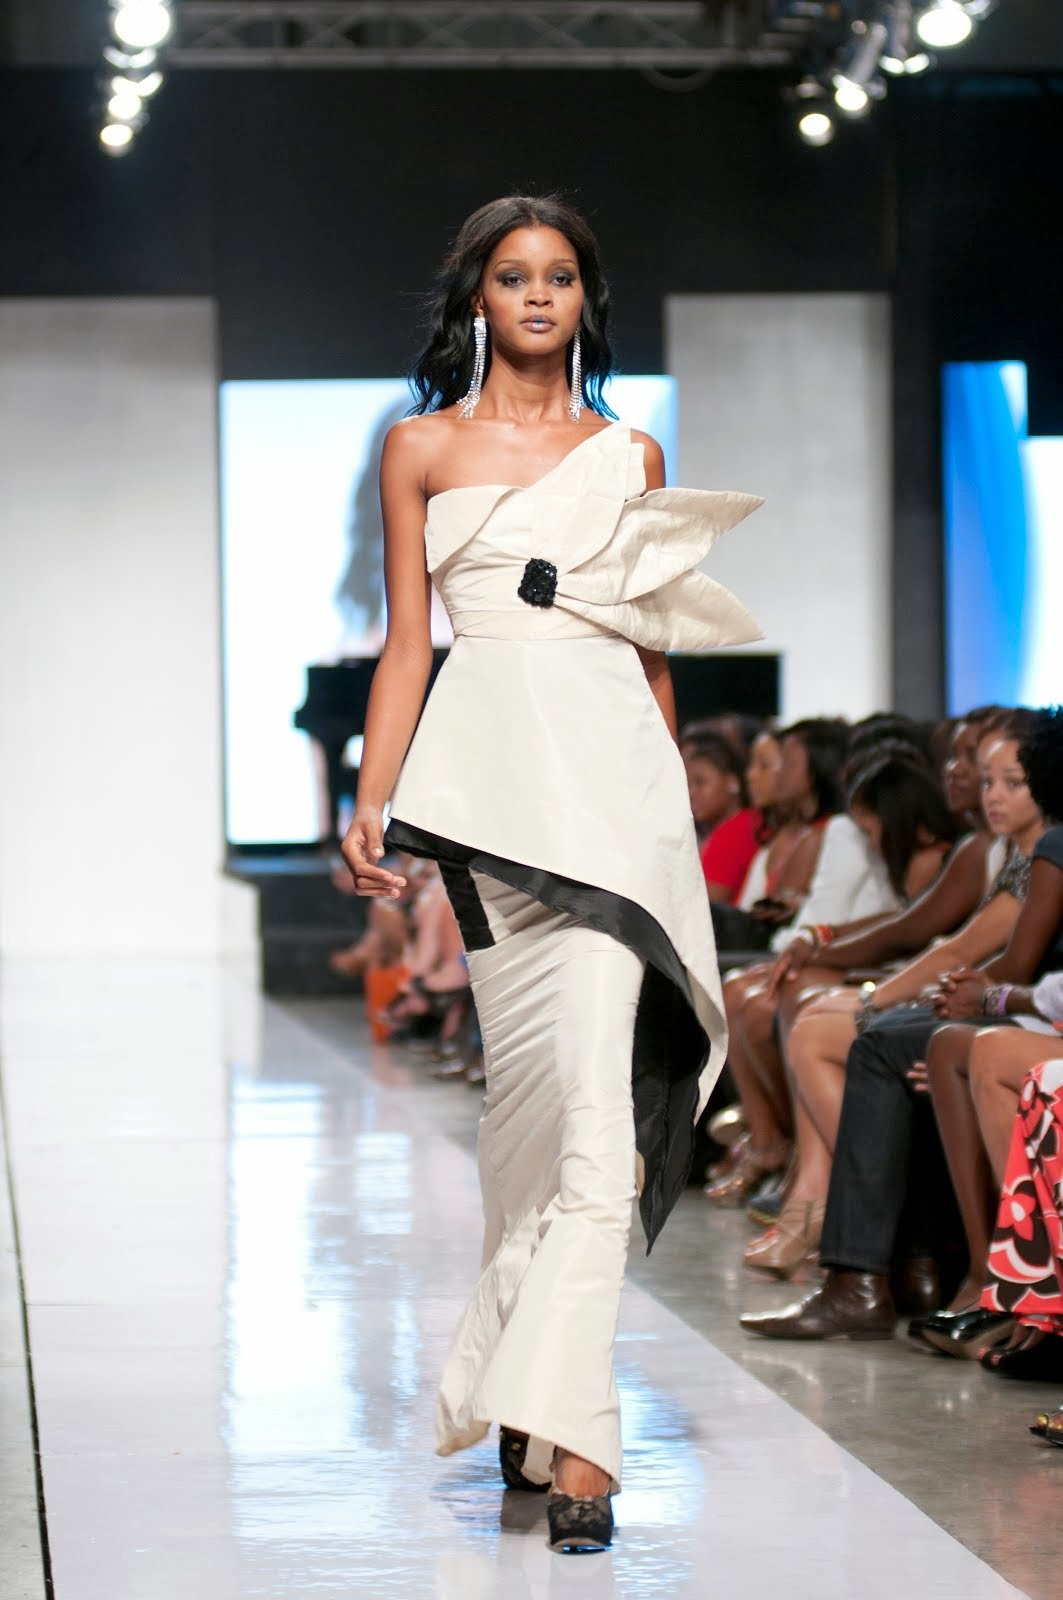 JAMAICAN DESIGNER SEWS IT UP